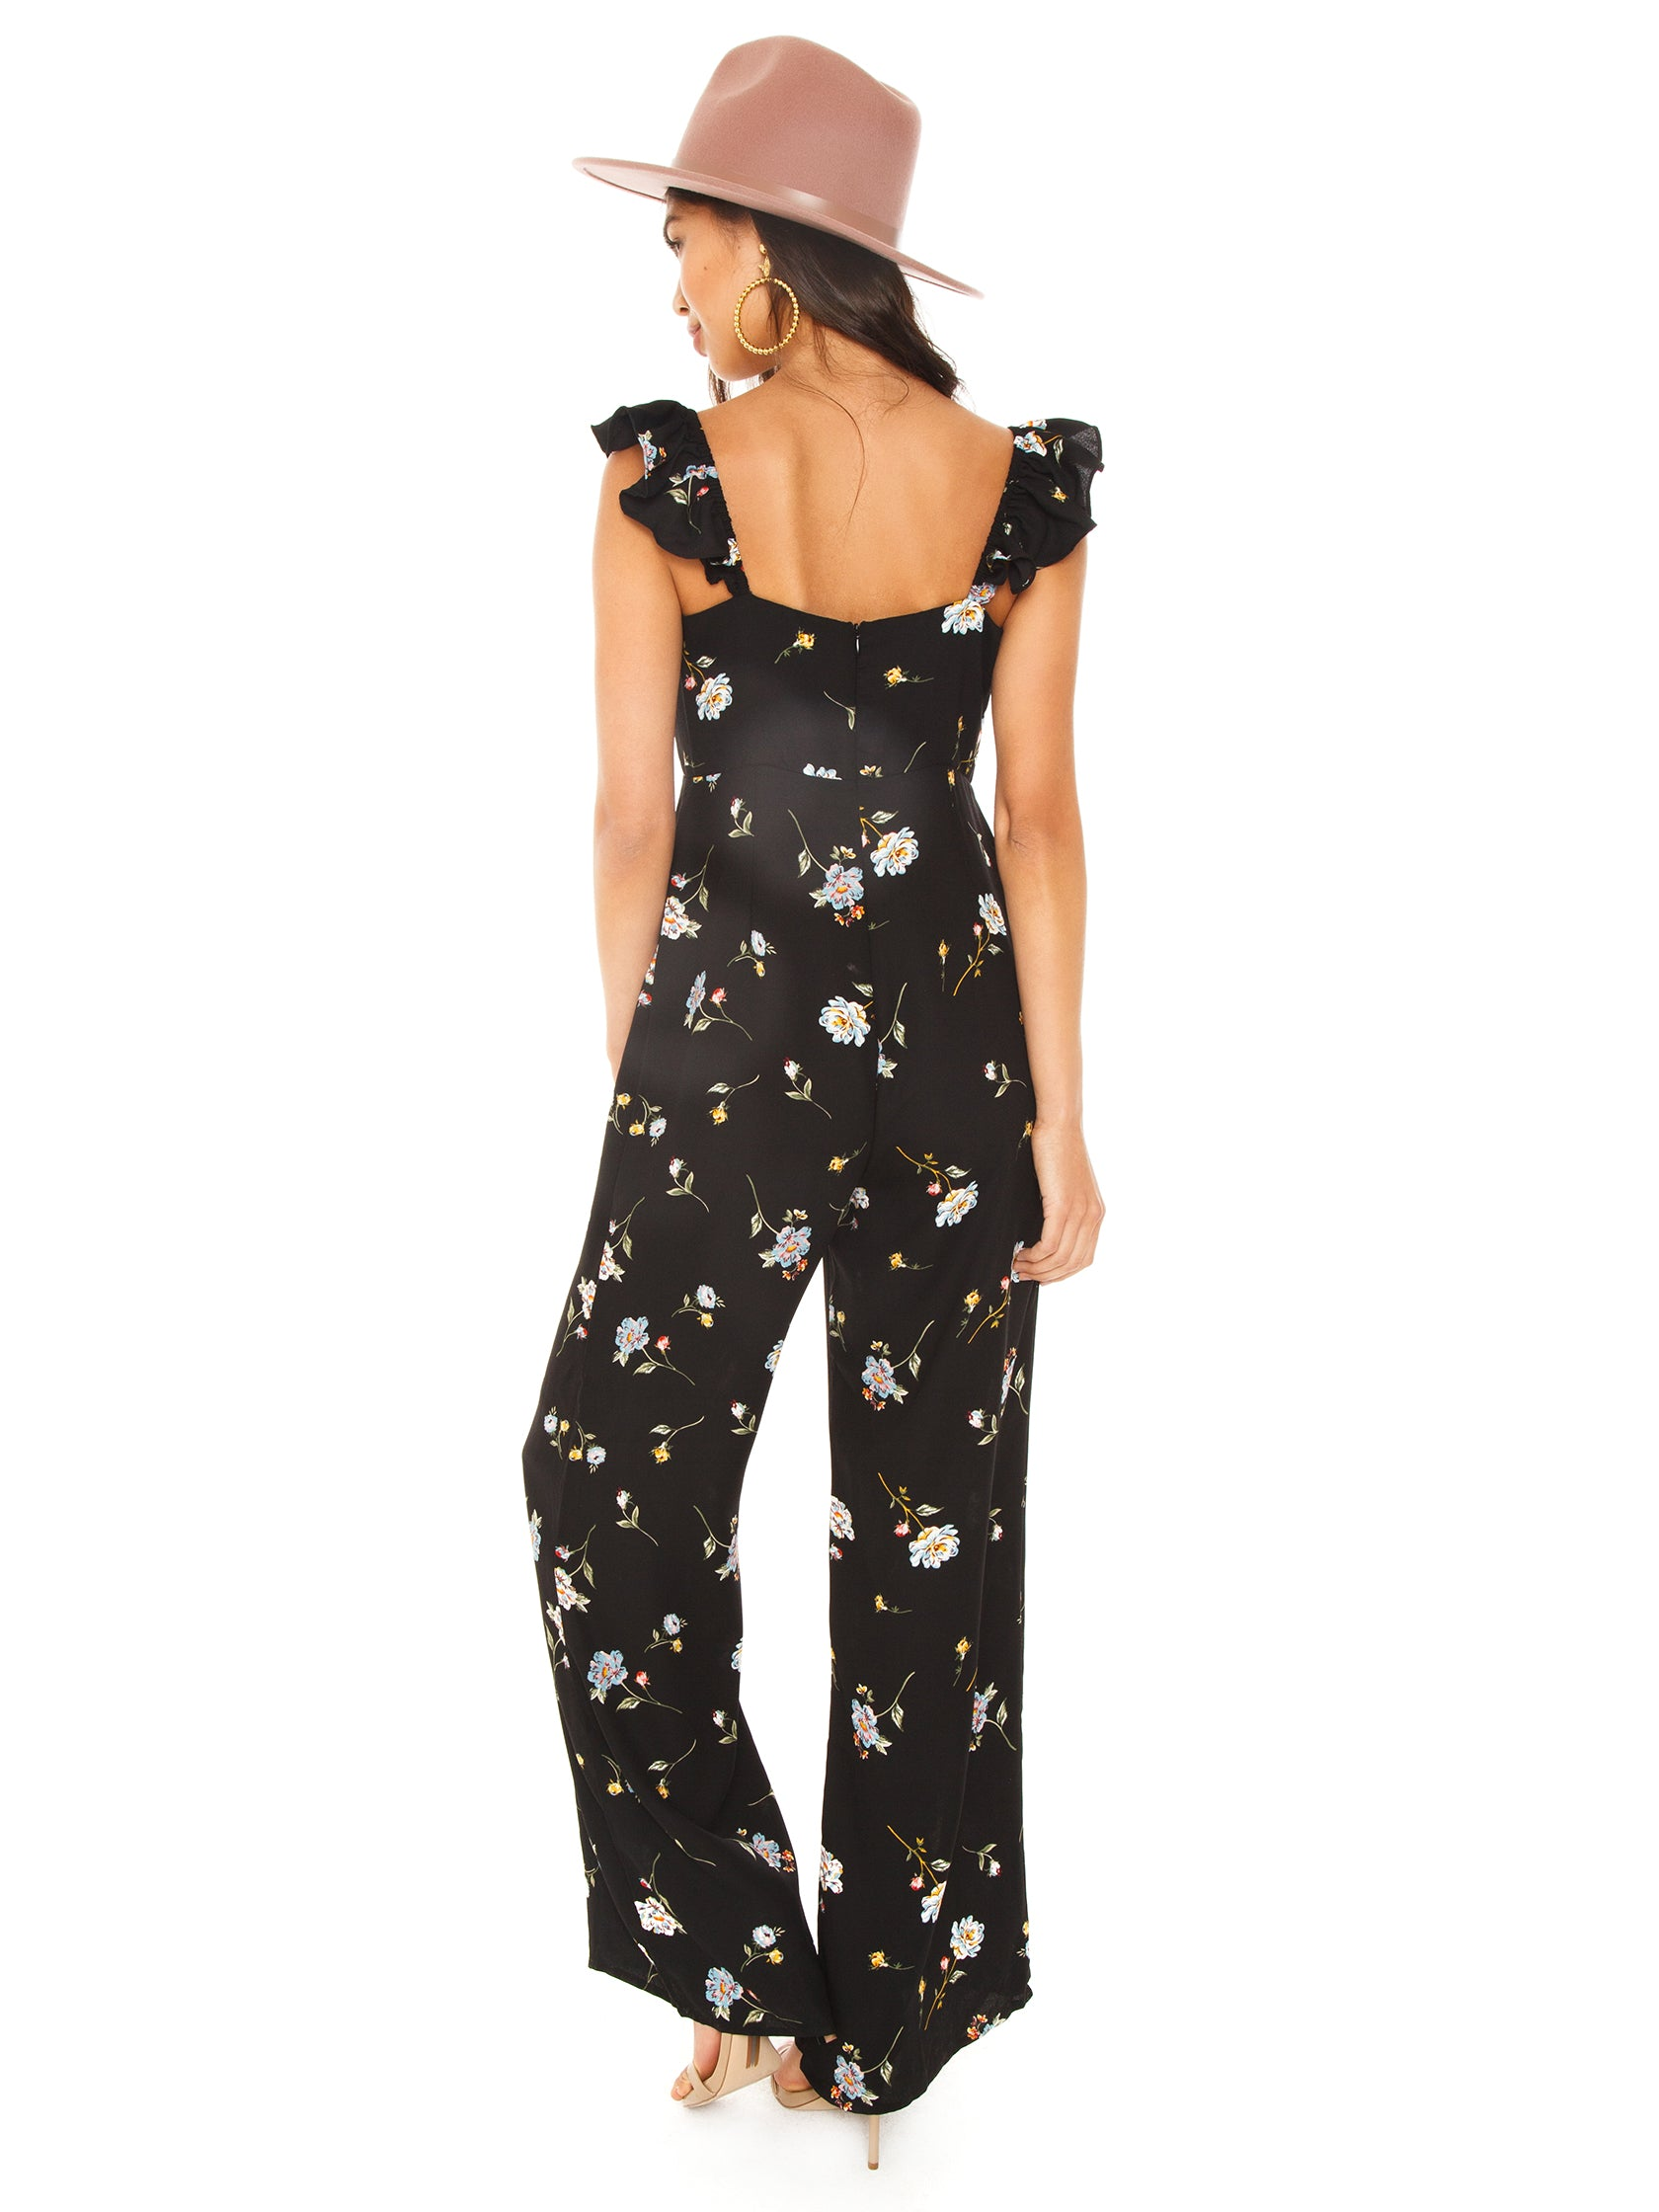 Women wearing a jumpsuit rental from Line & Dot called Darcey Jumpsuit